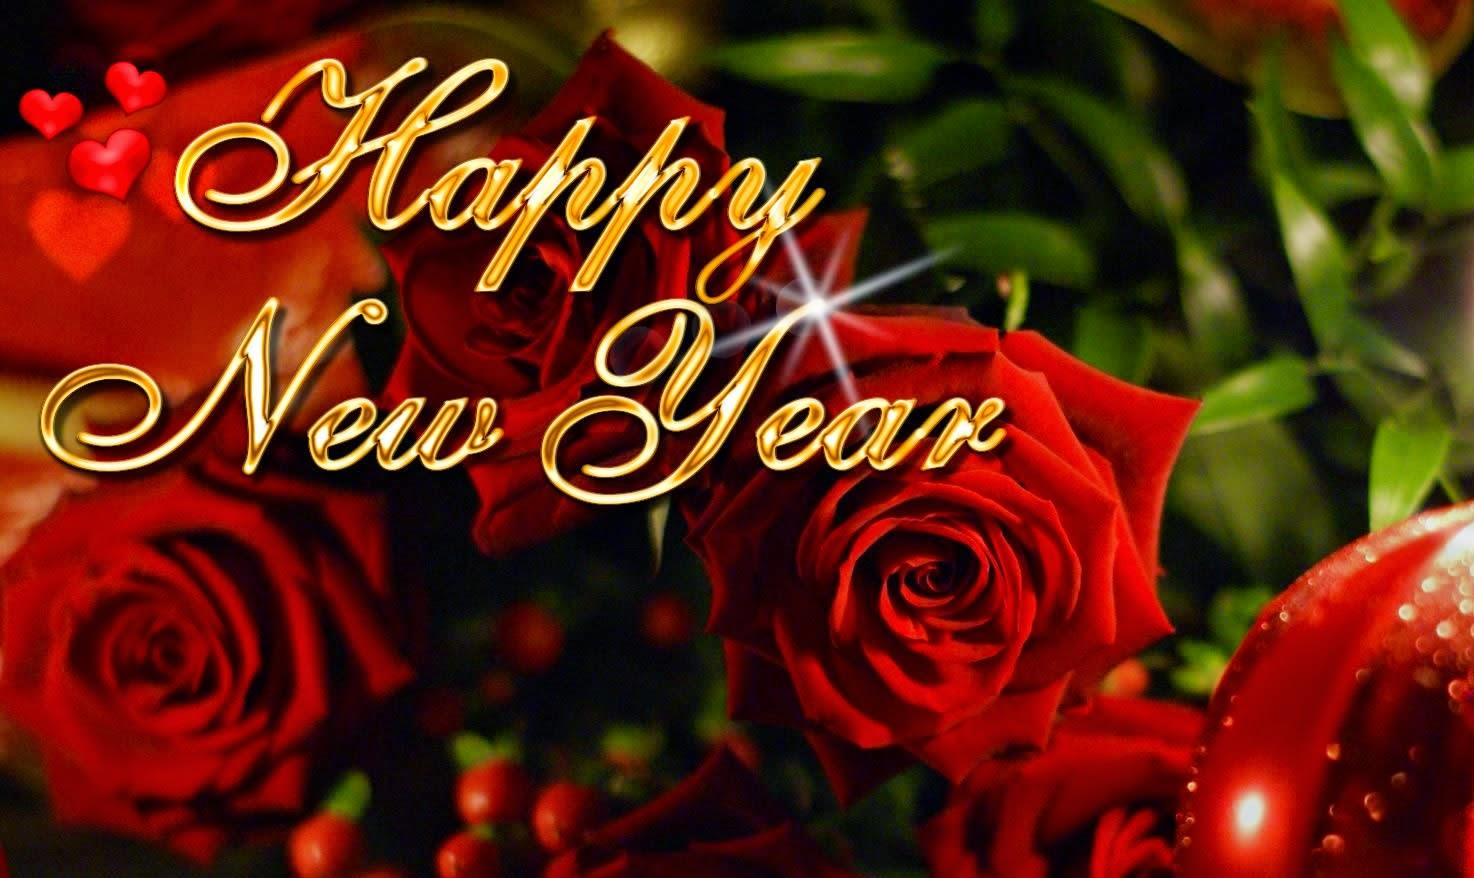 New year wishes 2017 13 apk download android entertainment apps new year wishes 2017 13 screenshot 1 m4hsunfo